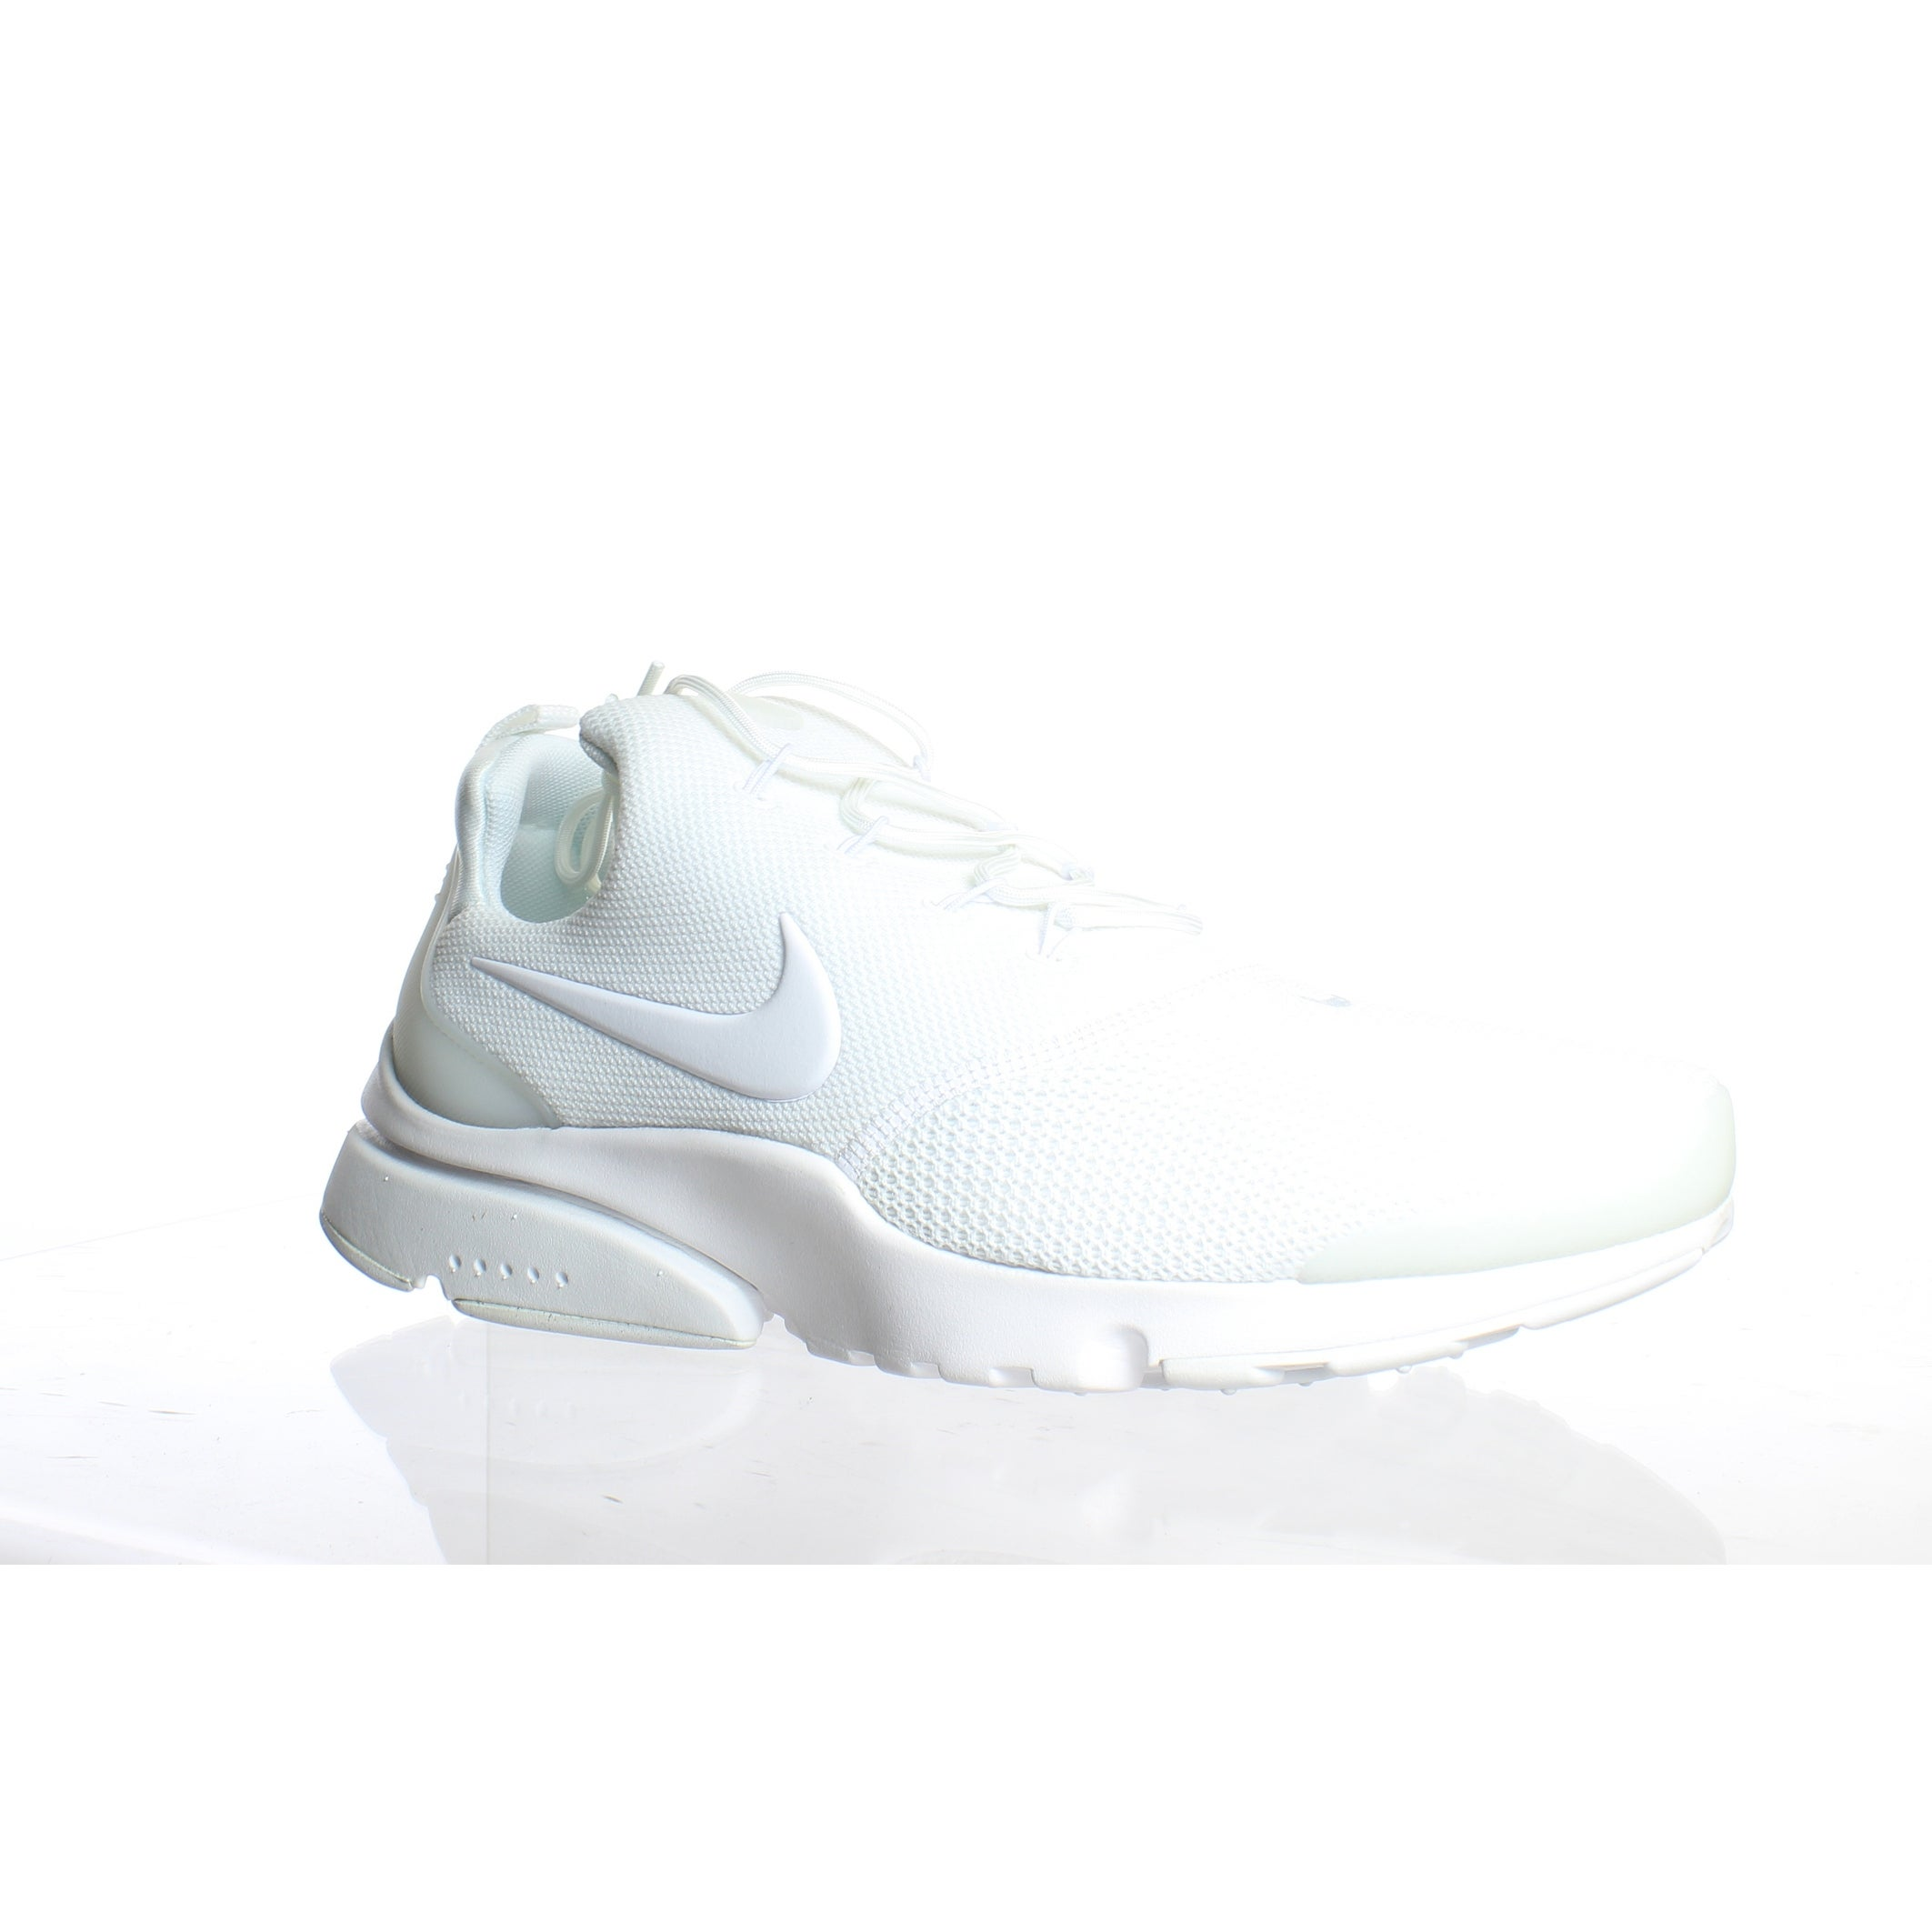 Nike Womens Presto Fly White Running Shoes Size 11